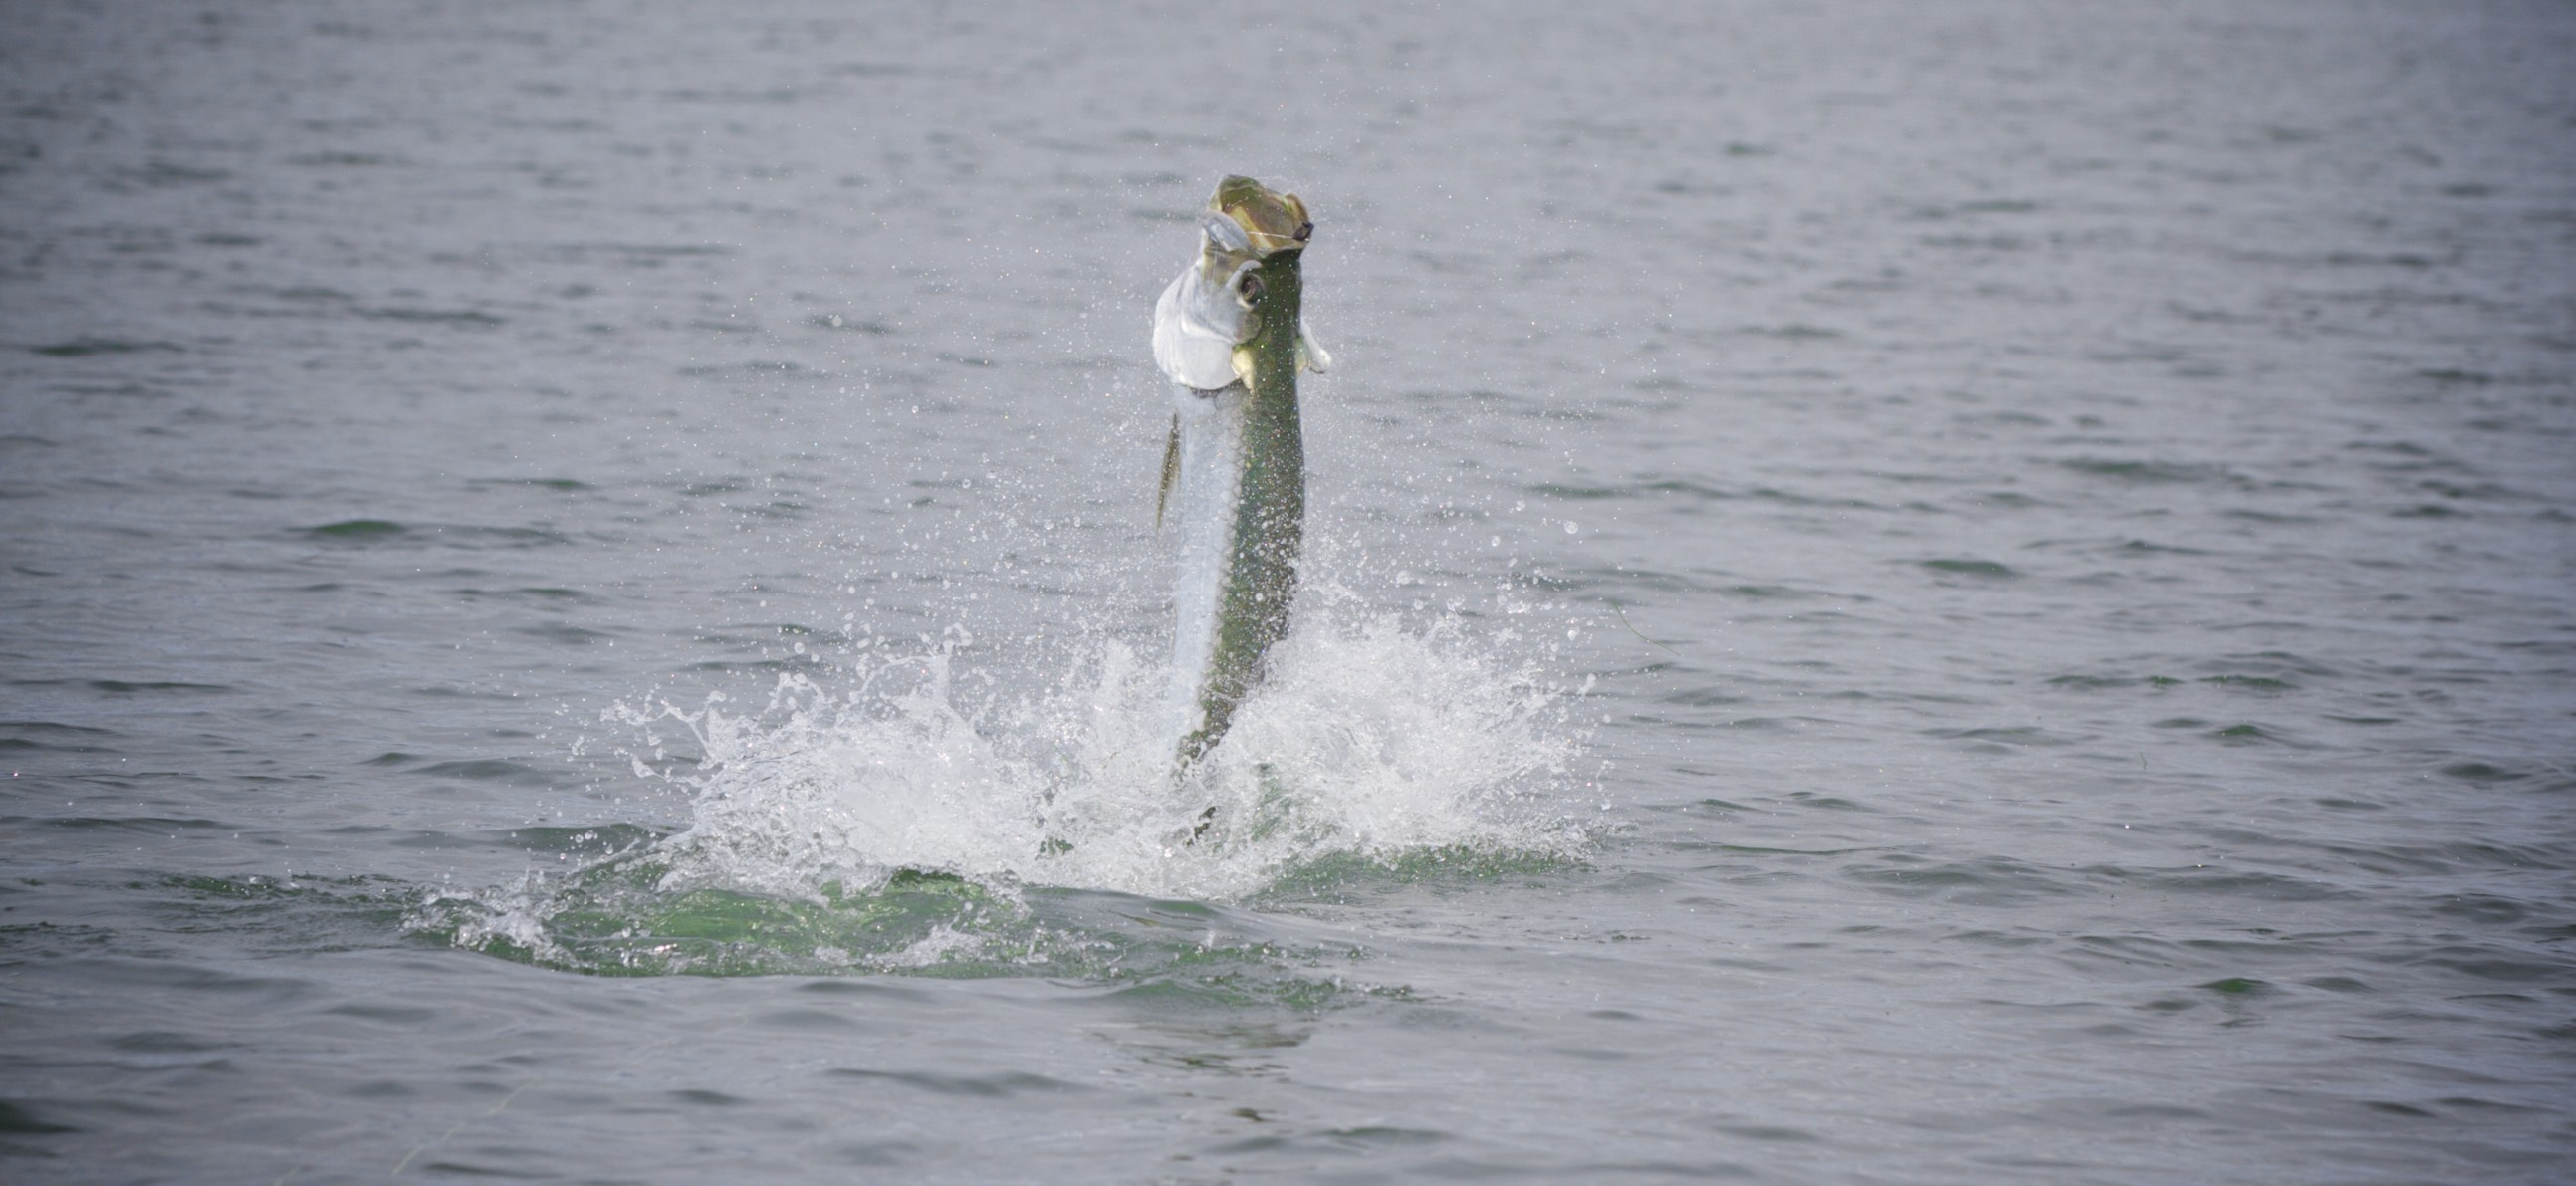 Florida Panhandle Tarpon season